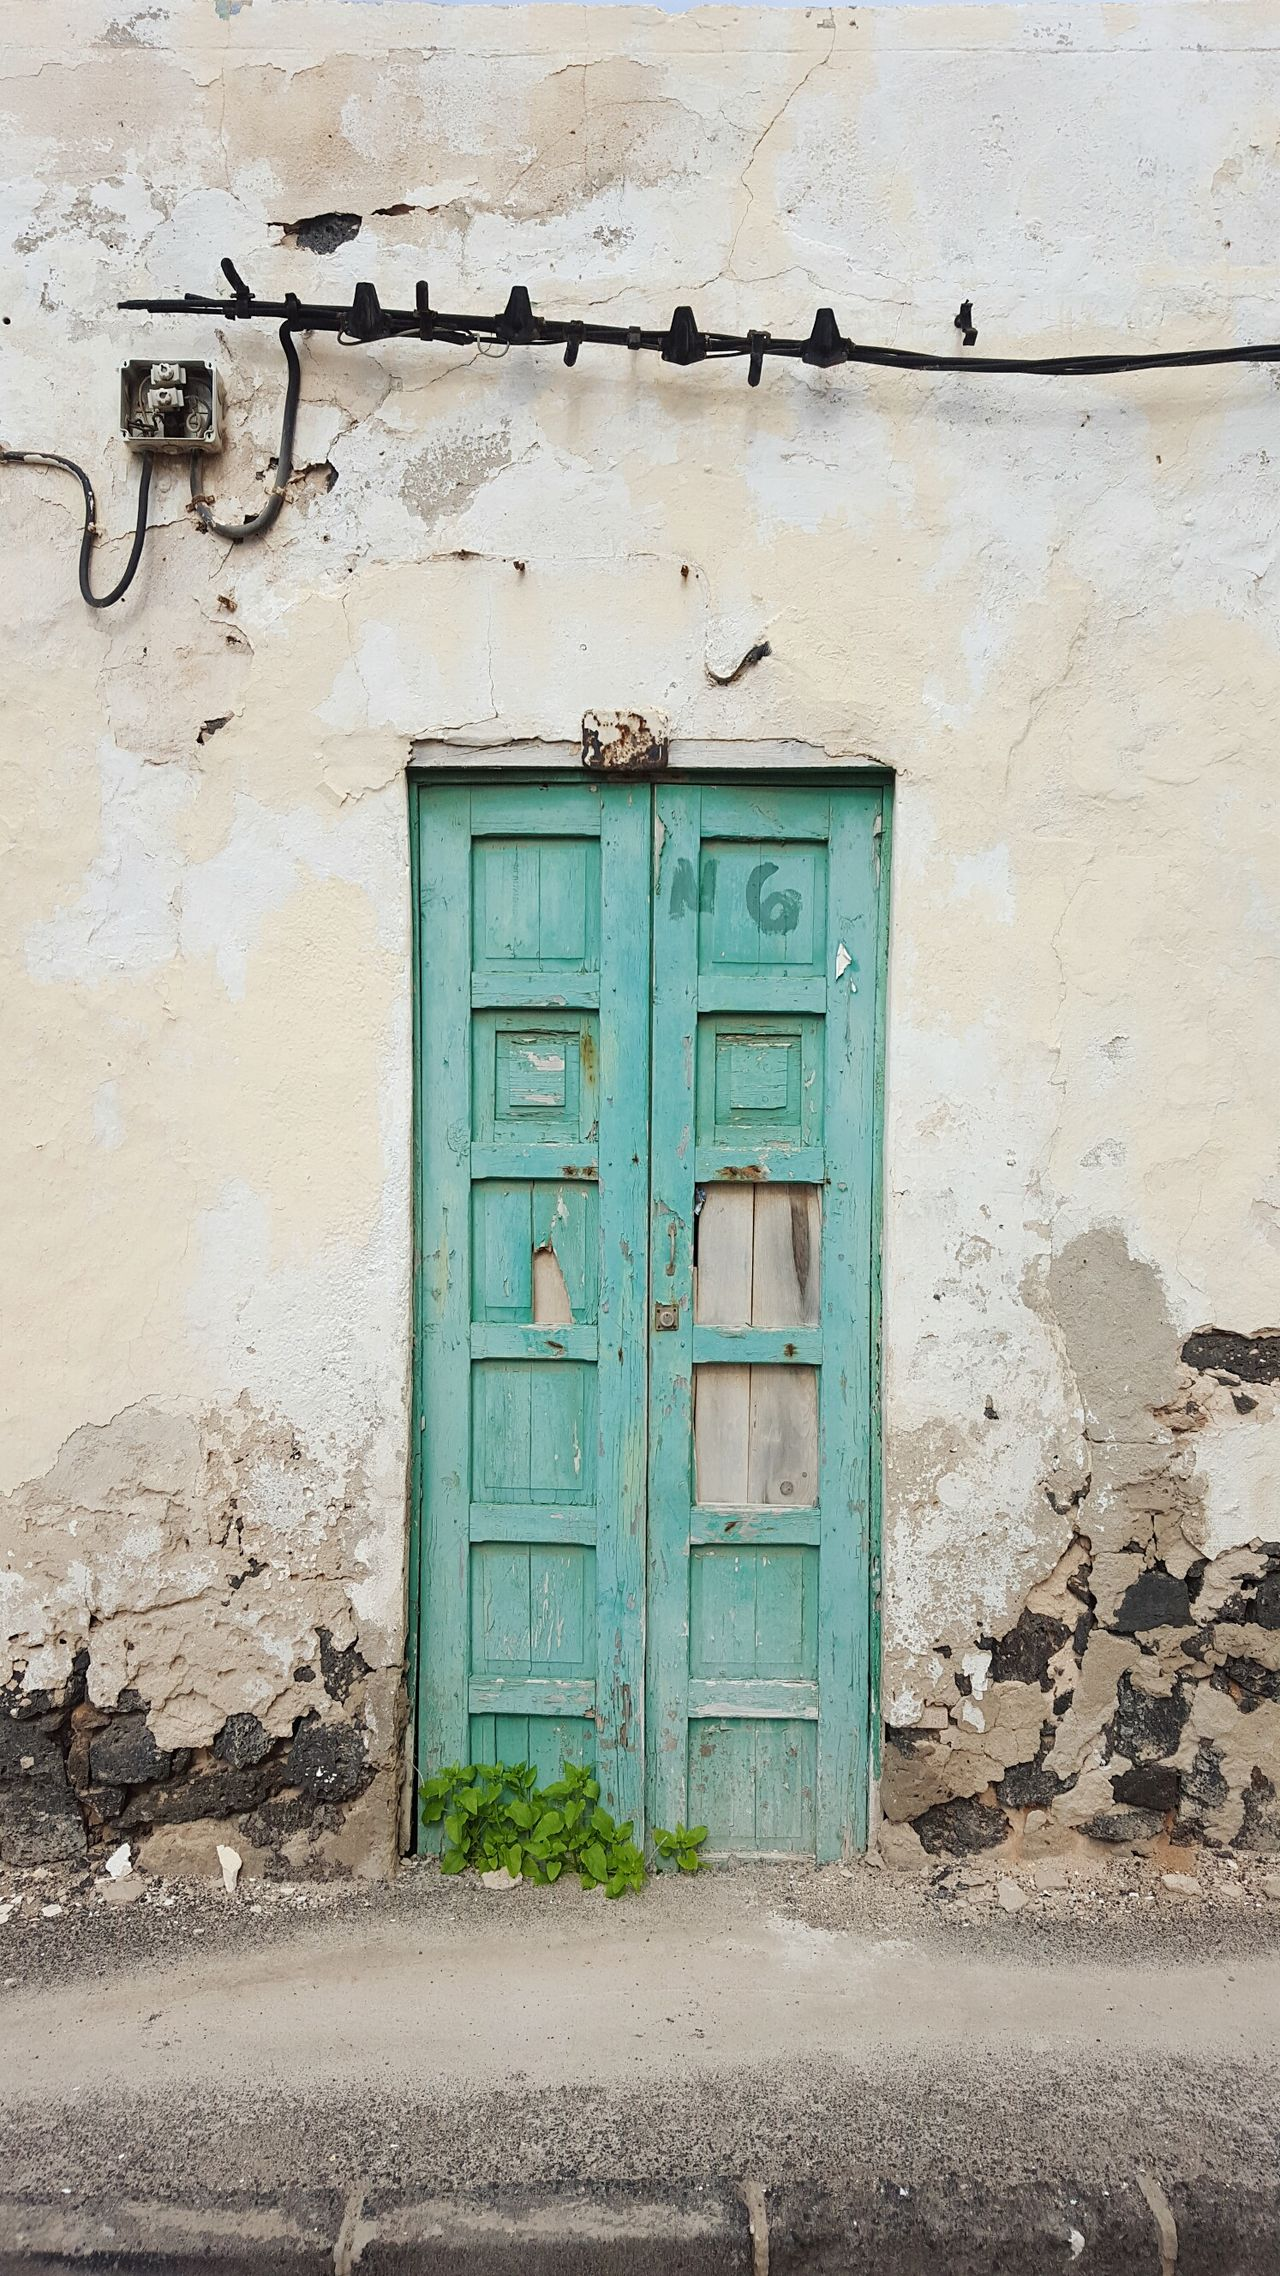 Door Outdoors Entrance No People Close-up Electricity Cables On Wall Old Wooden Door Electricity Cables Architecture